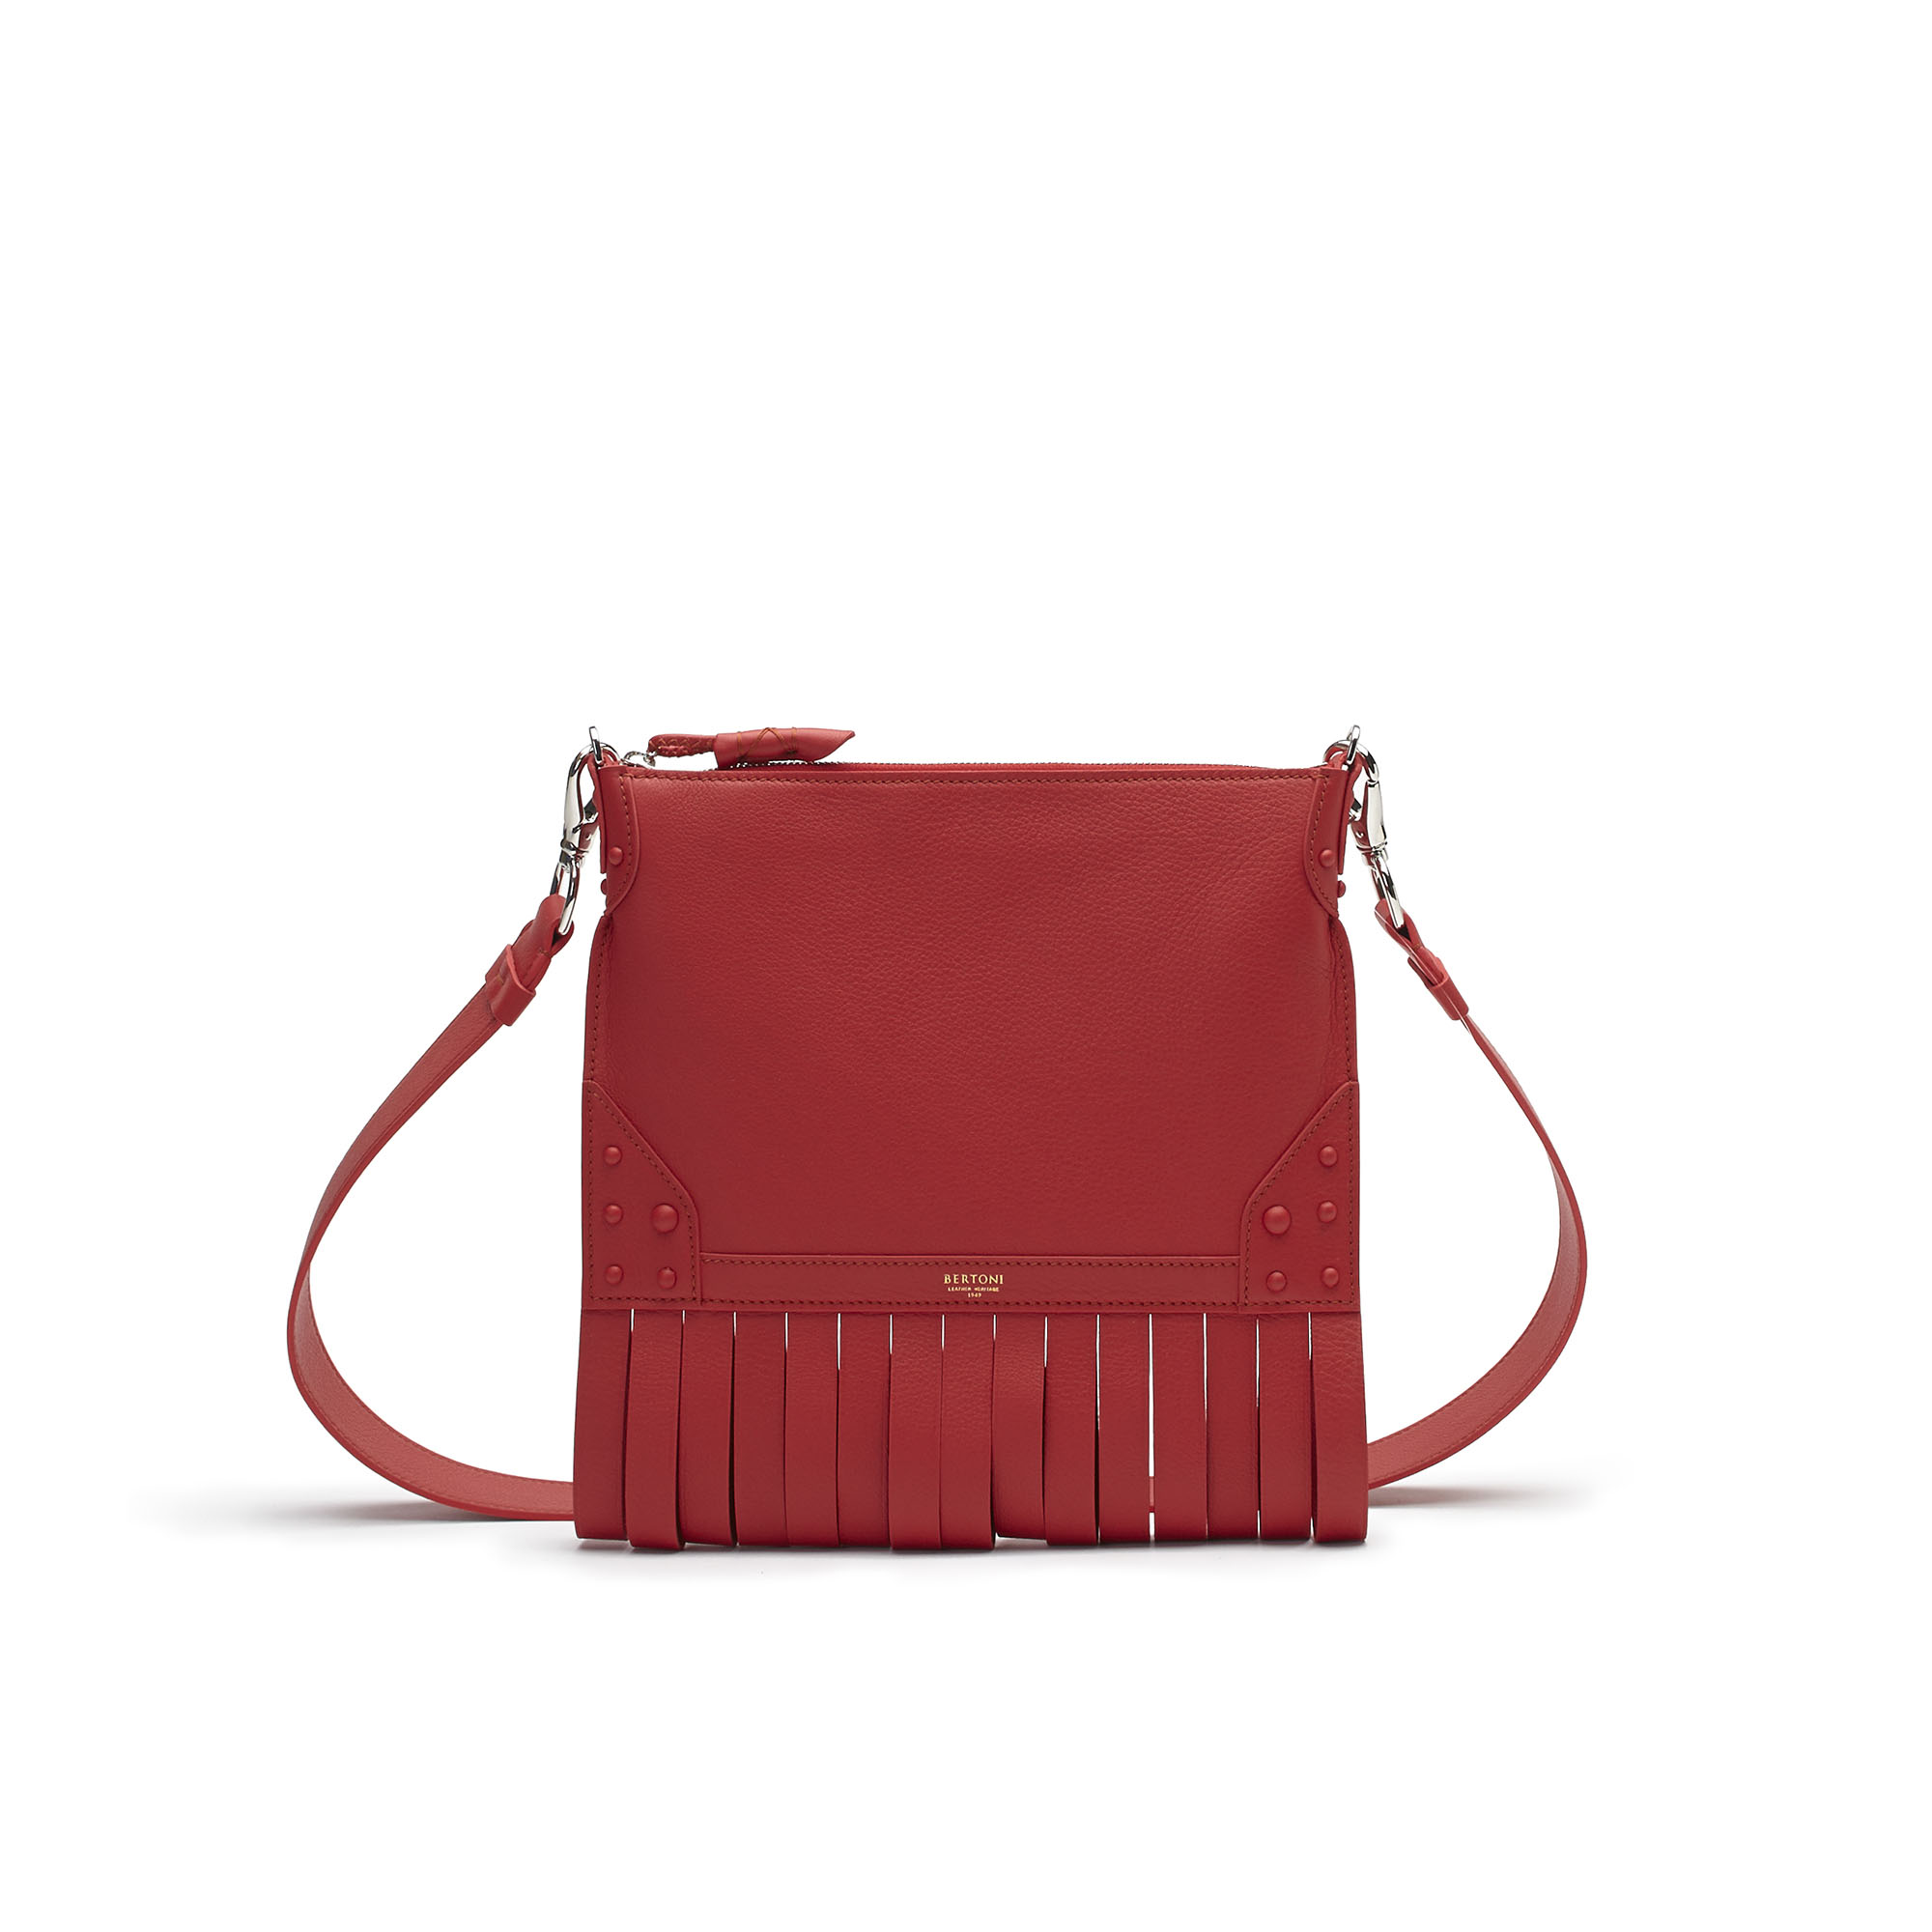 The red soft calf Franche Zip Pouch bag by Bertoni 1949 01